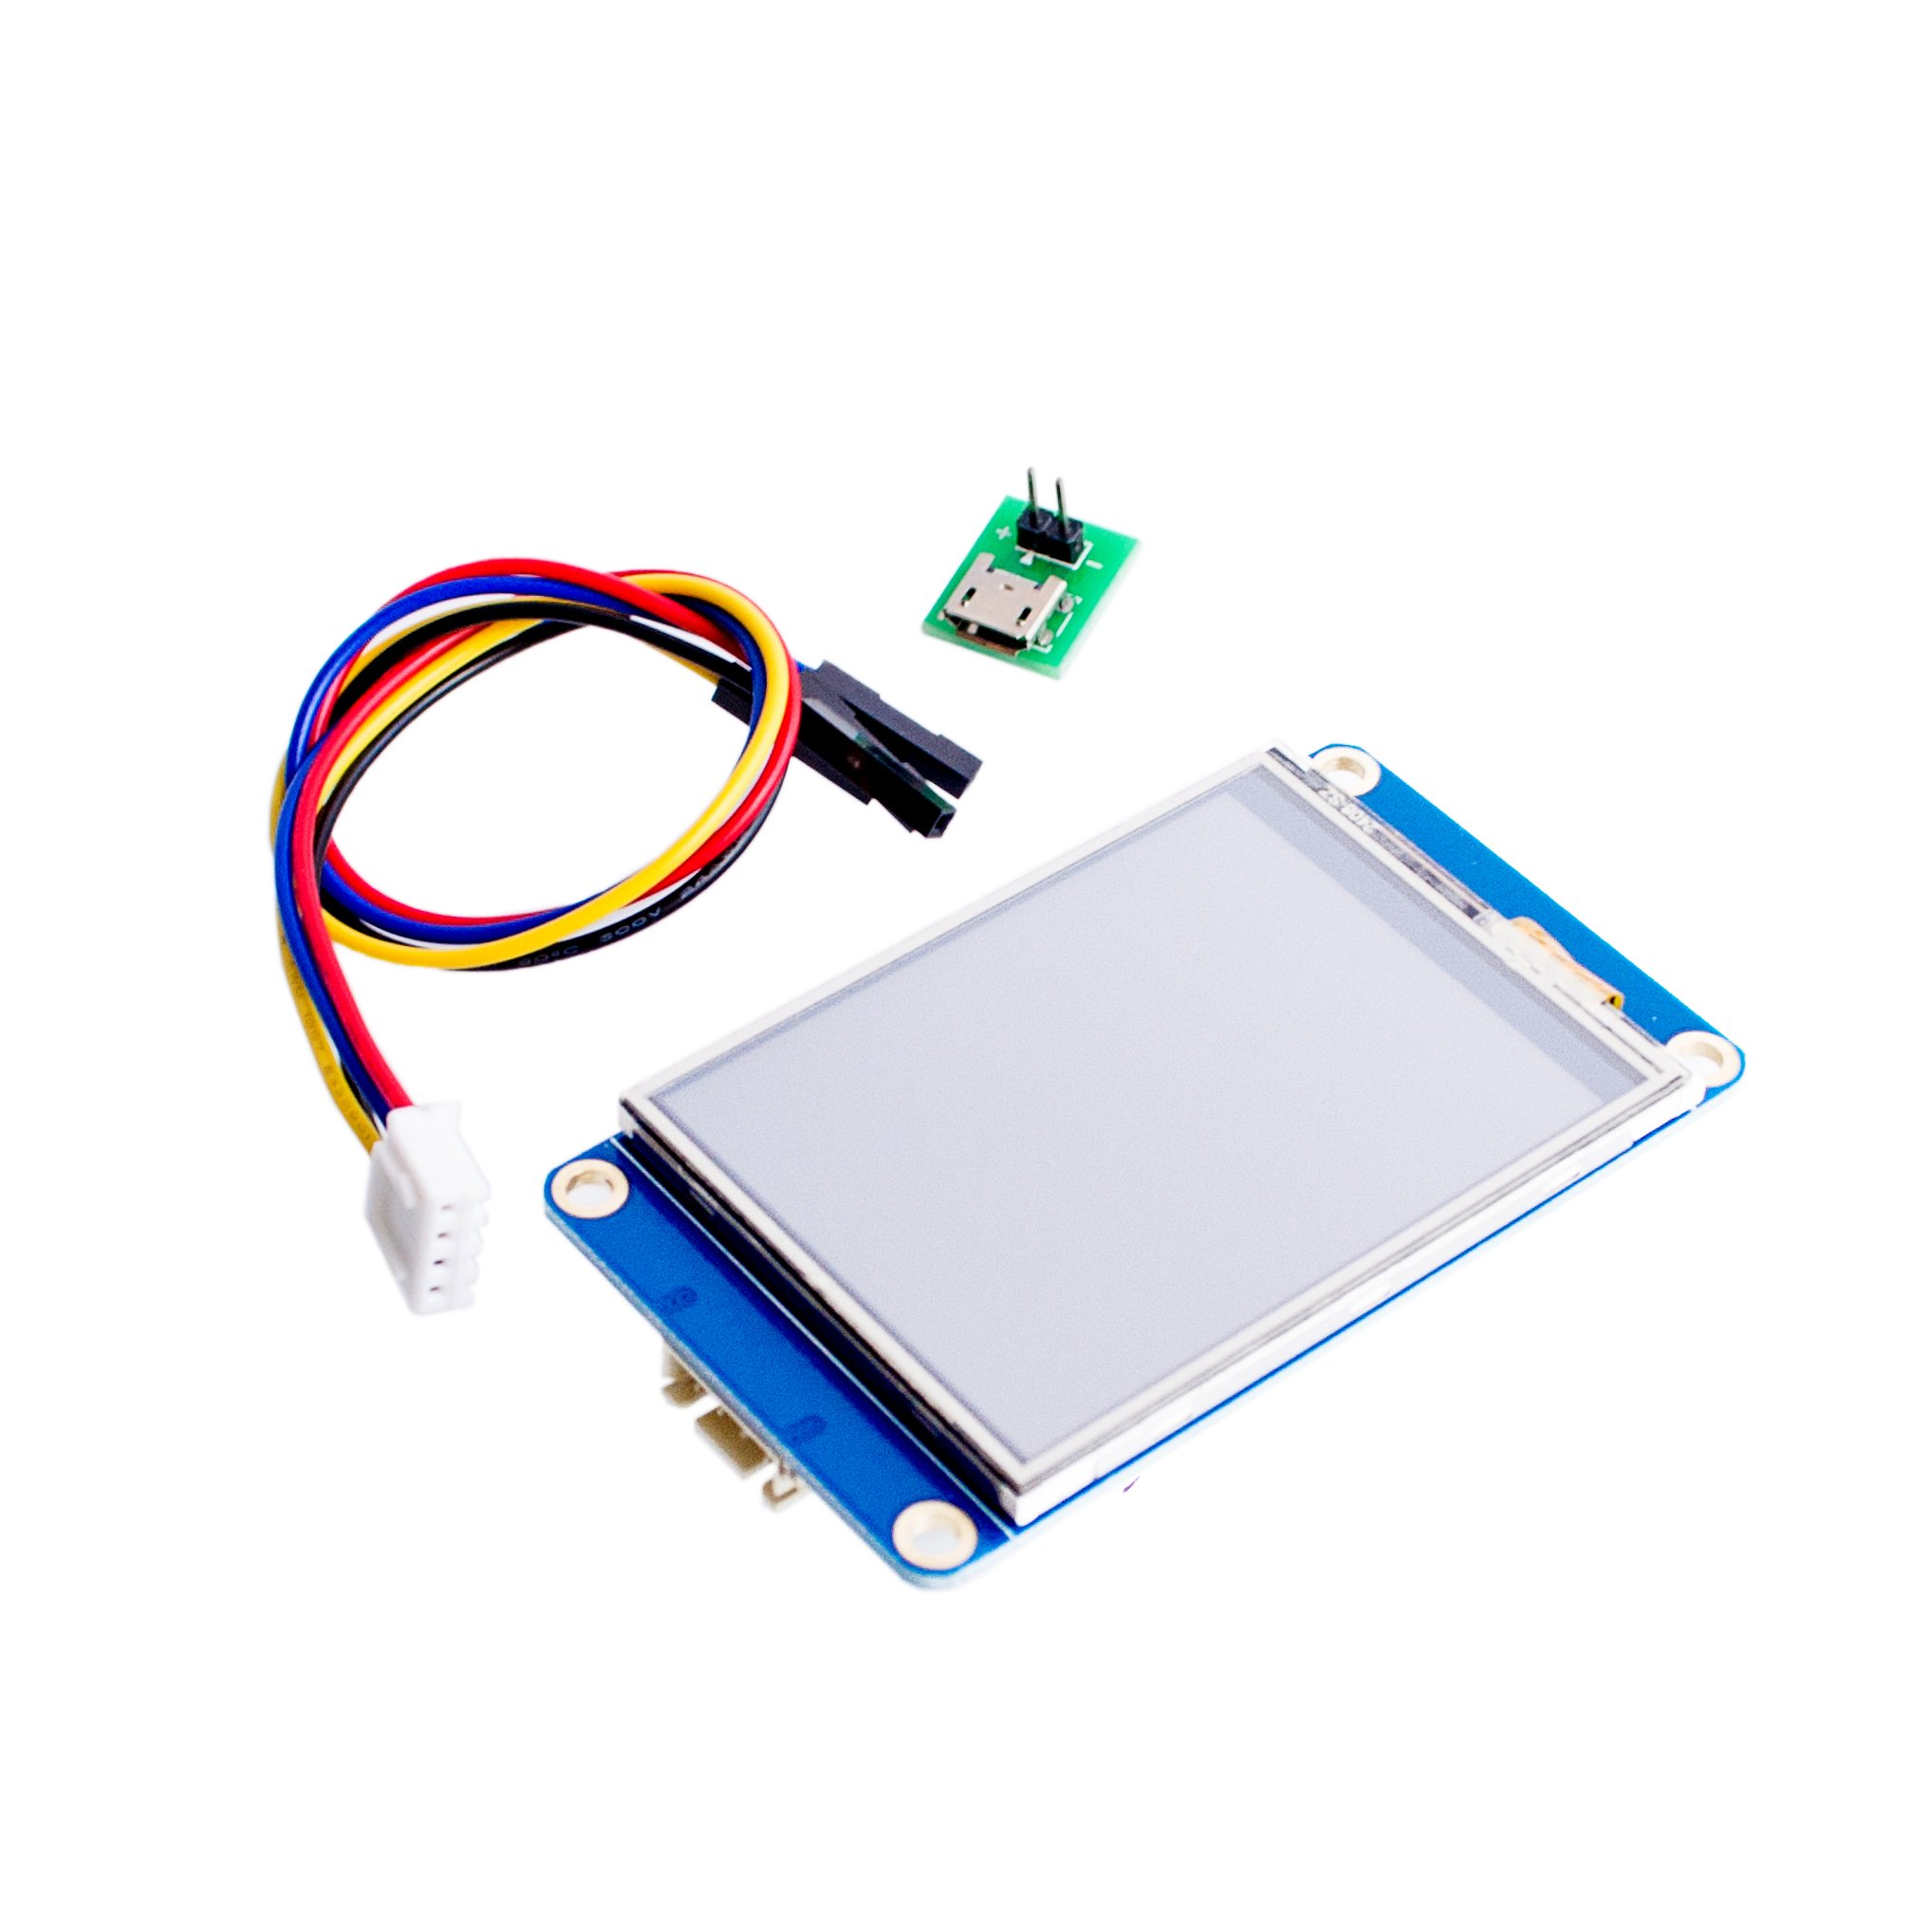 AEEDAIRY 2.8'' Nextion HMI Intelligent Smart USART UART Serial Touch TFT LCD Module Display Panel For Raspberry Pi 2 A+ B+ Kits